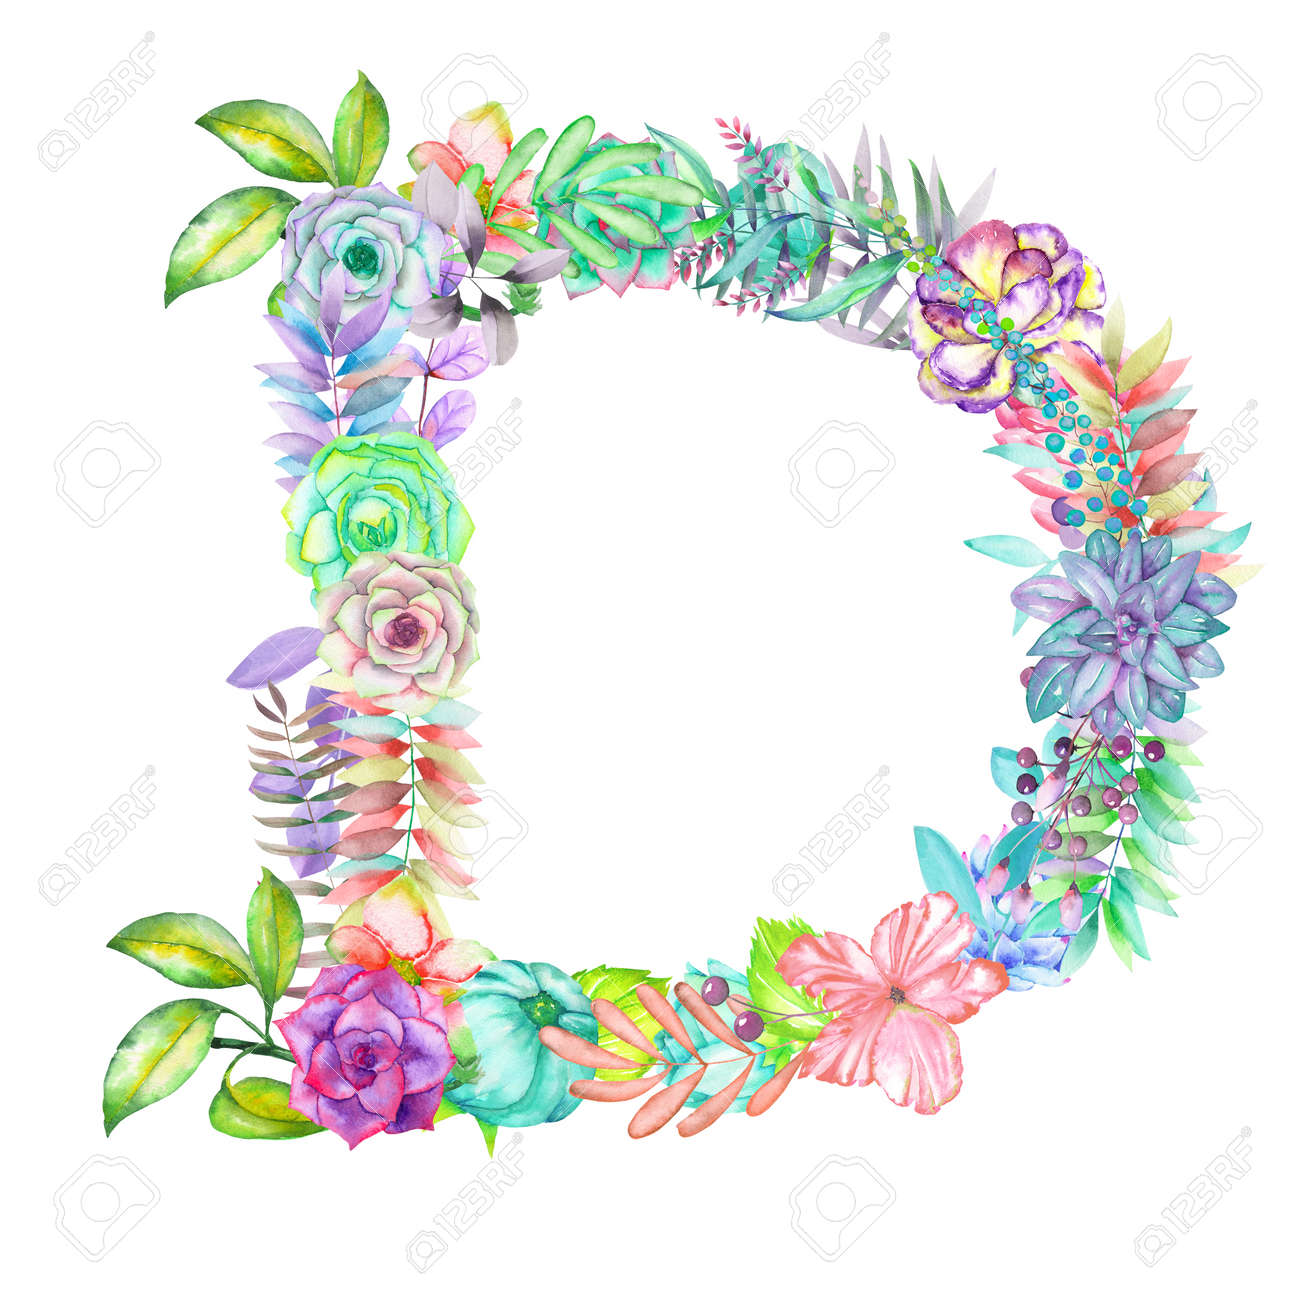 Capital Letter D Of Watercolor Flowers Isolated Hand Drawn On